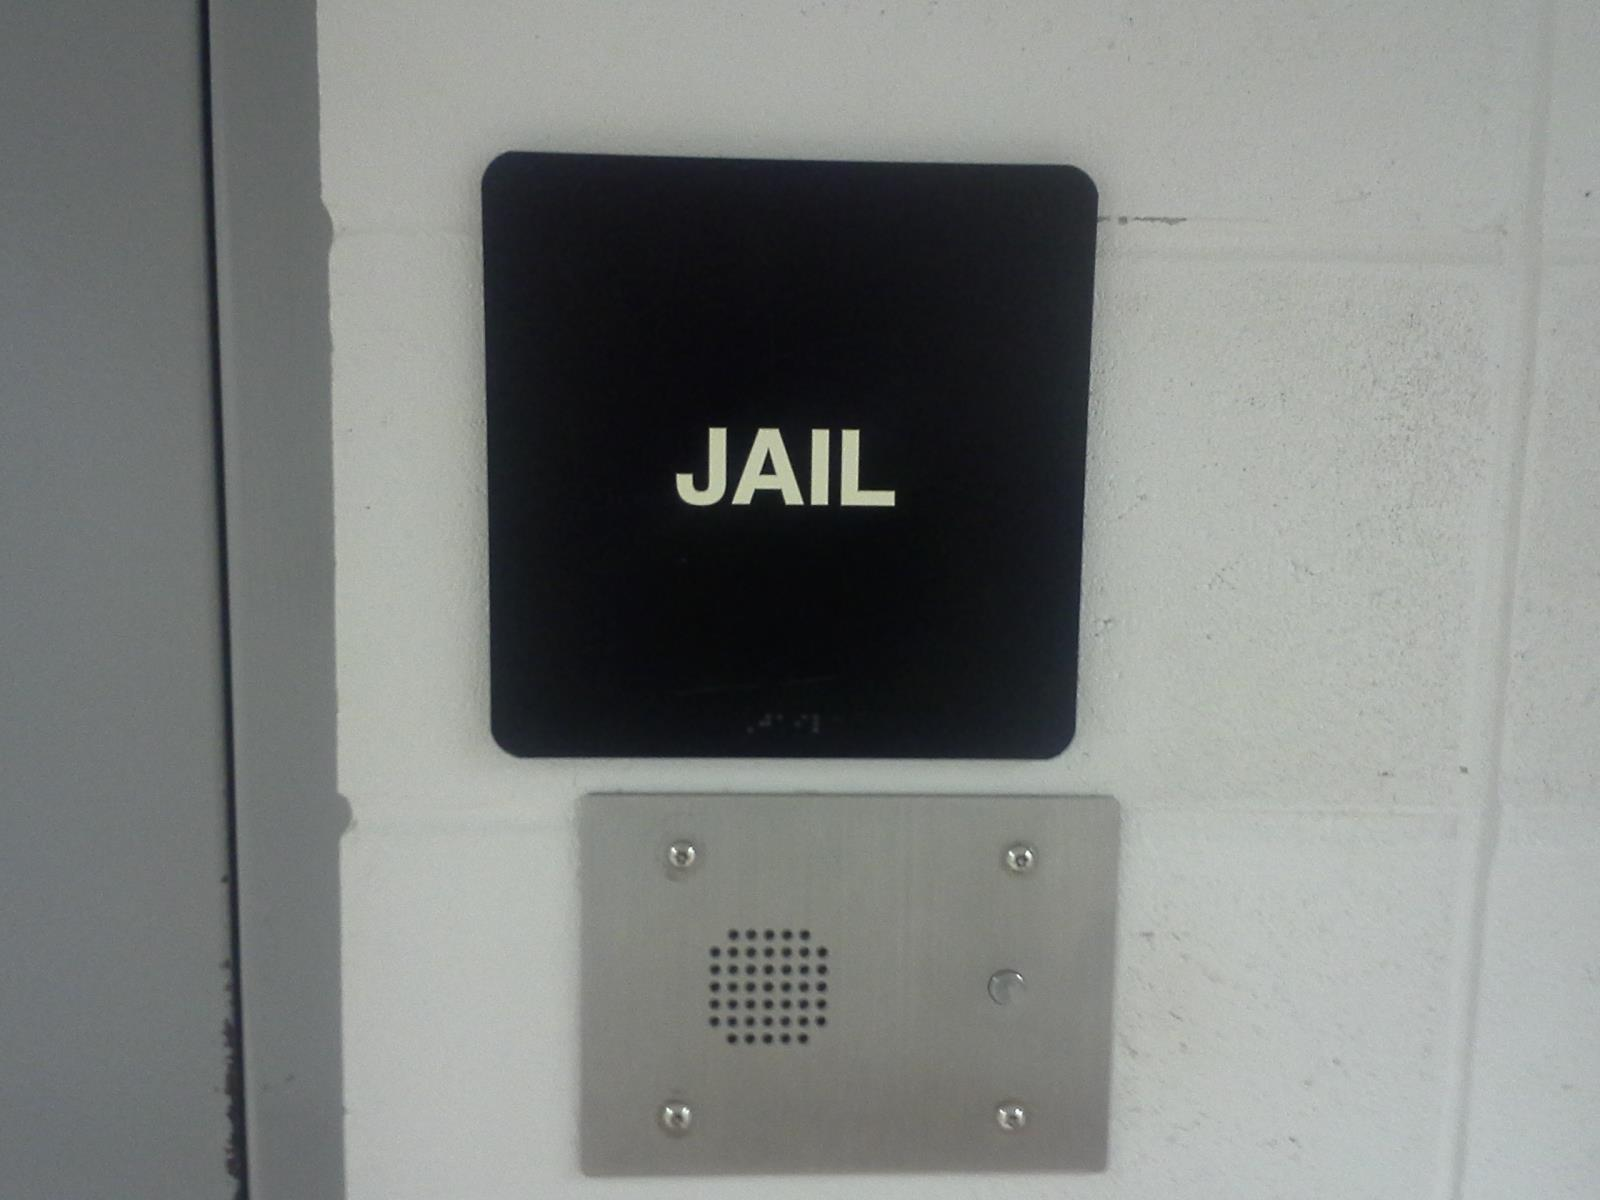 Jail Intercom